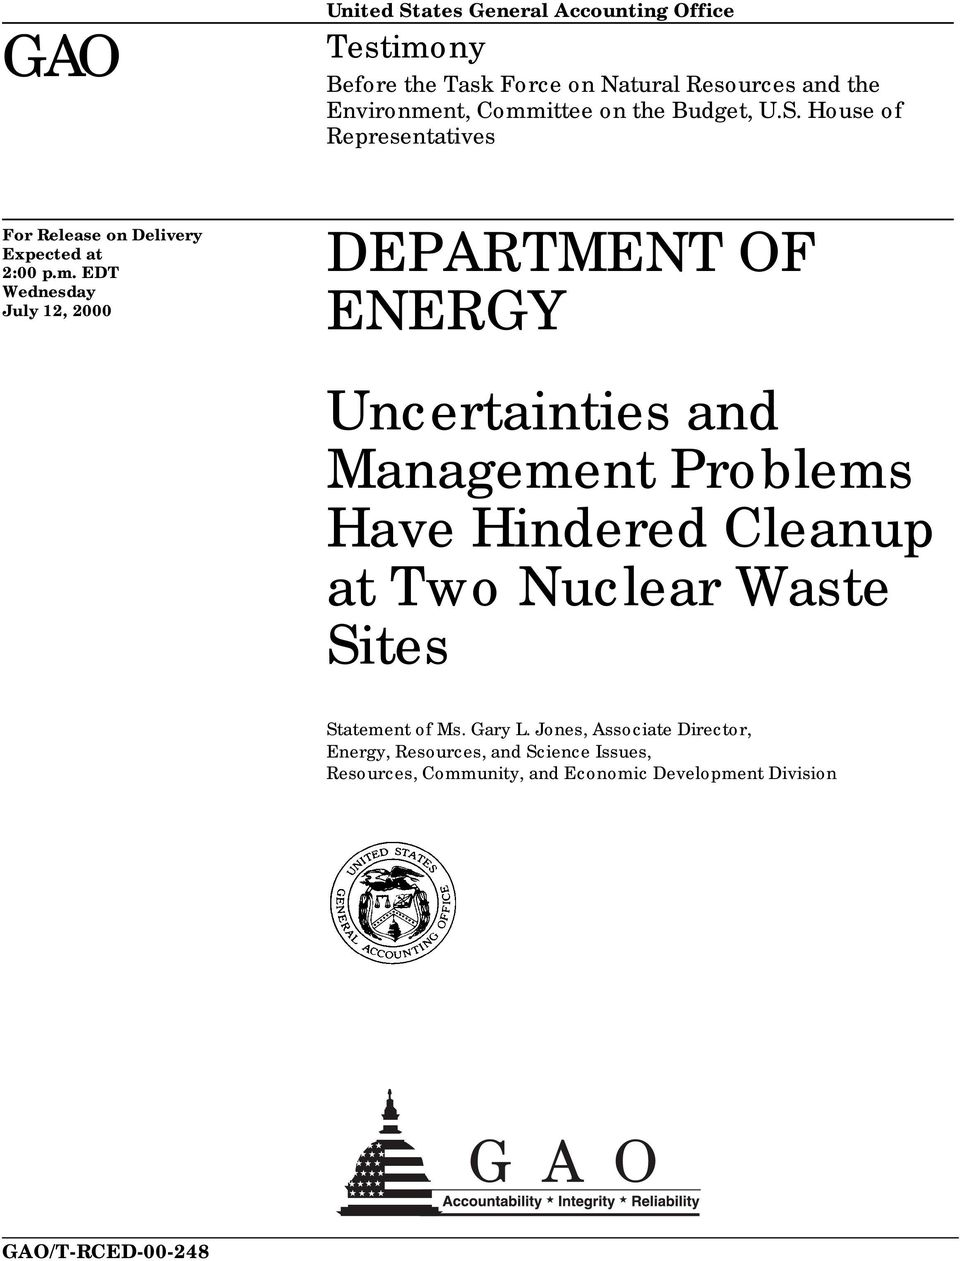 EDT Wednesday July 12, 2000 DEPARTMENT OF ENERGY Uncertainties and Management Problems Have Hindered Cleanup at Two Nuclear Waste